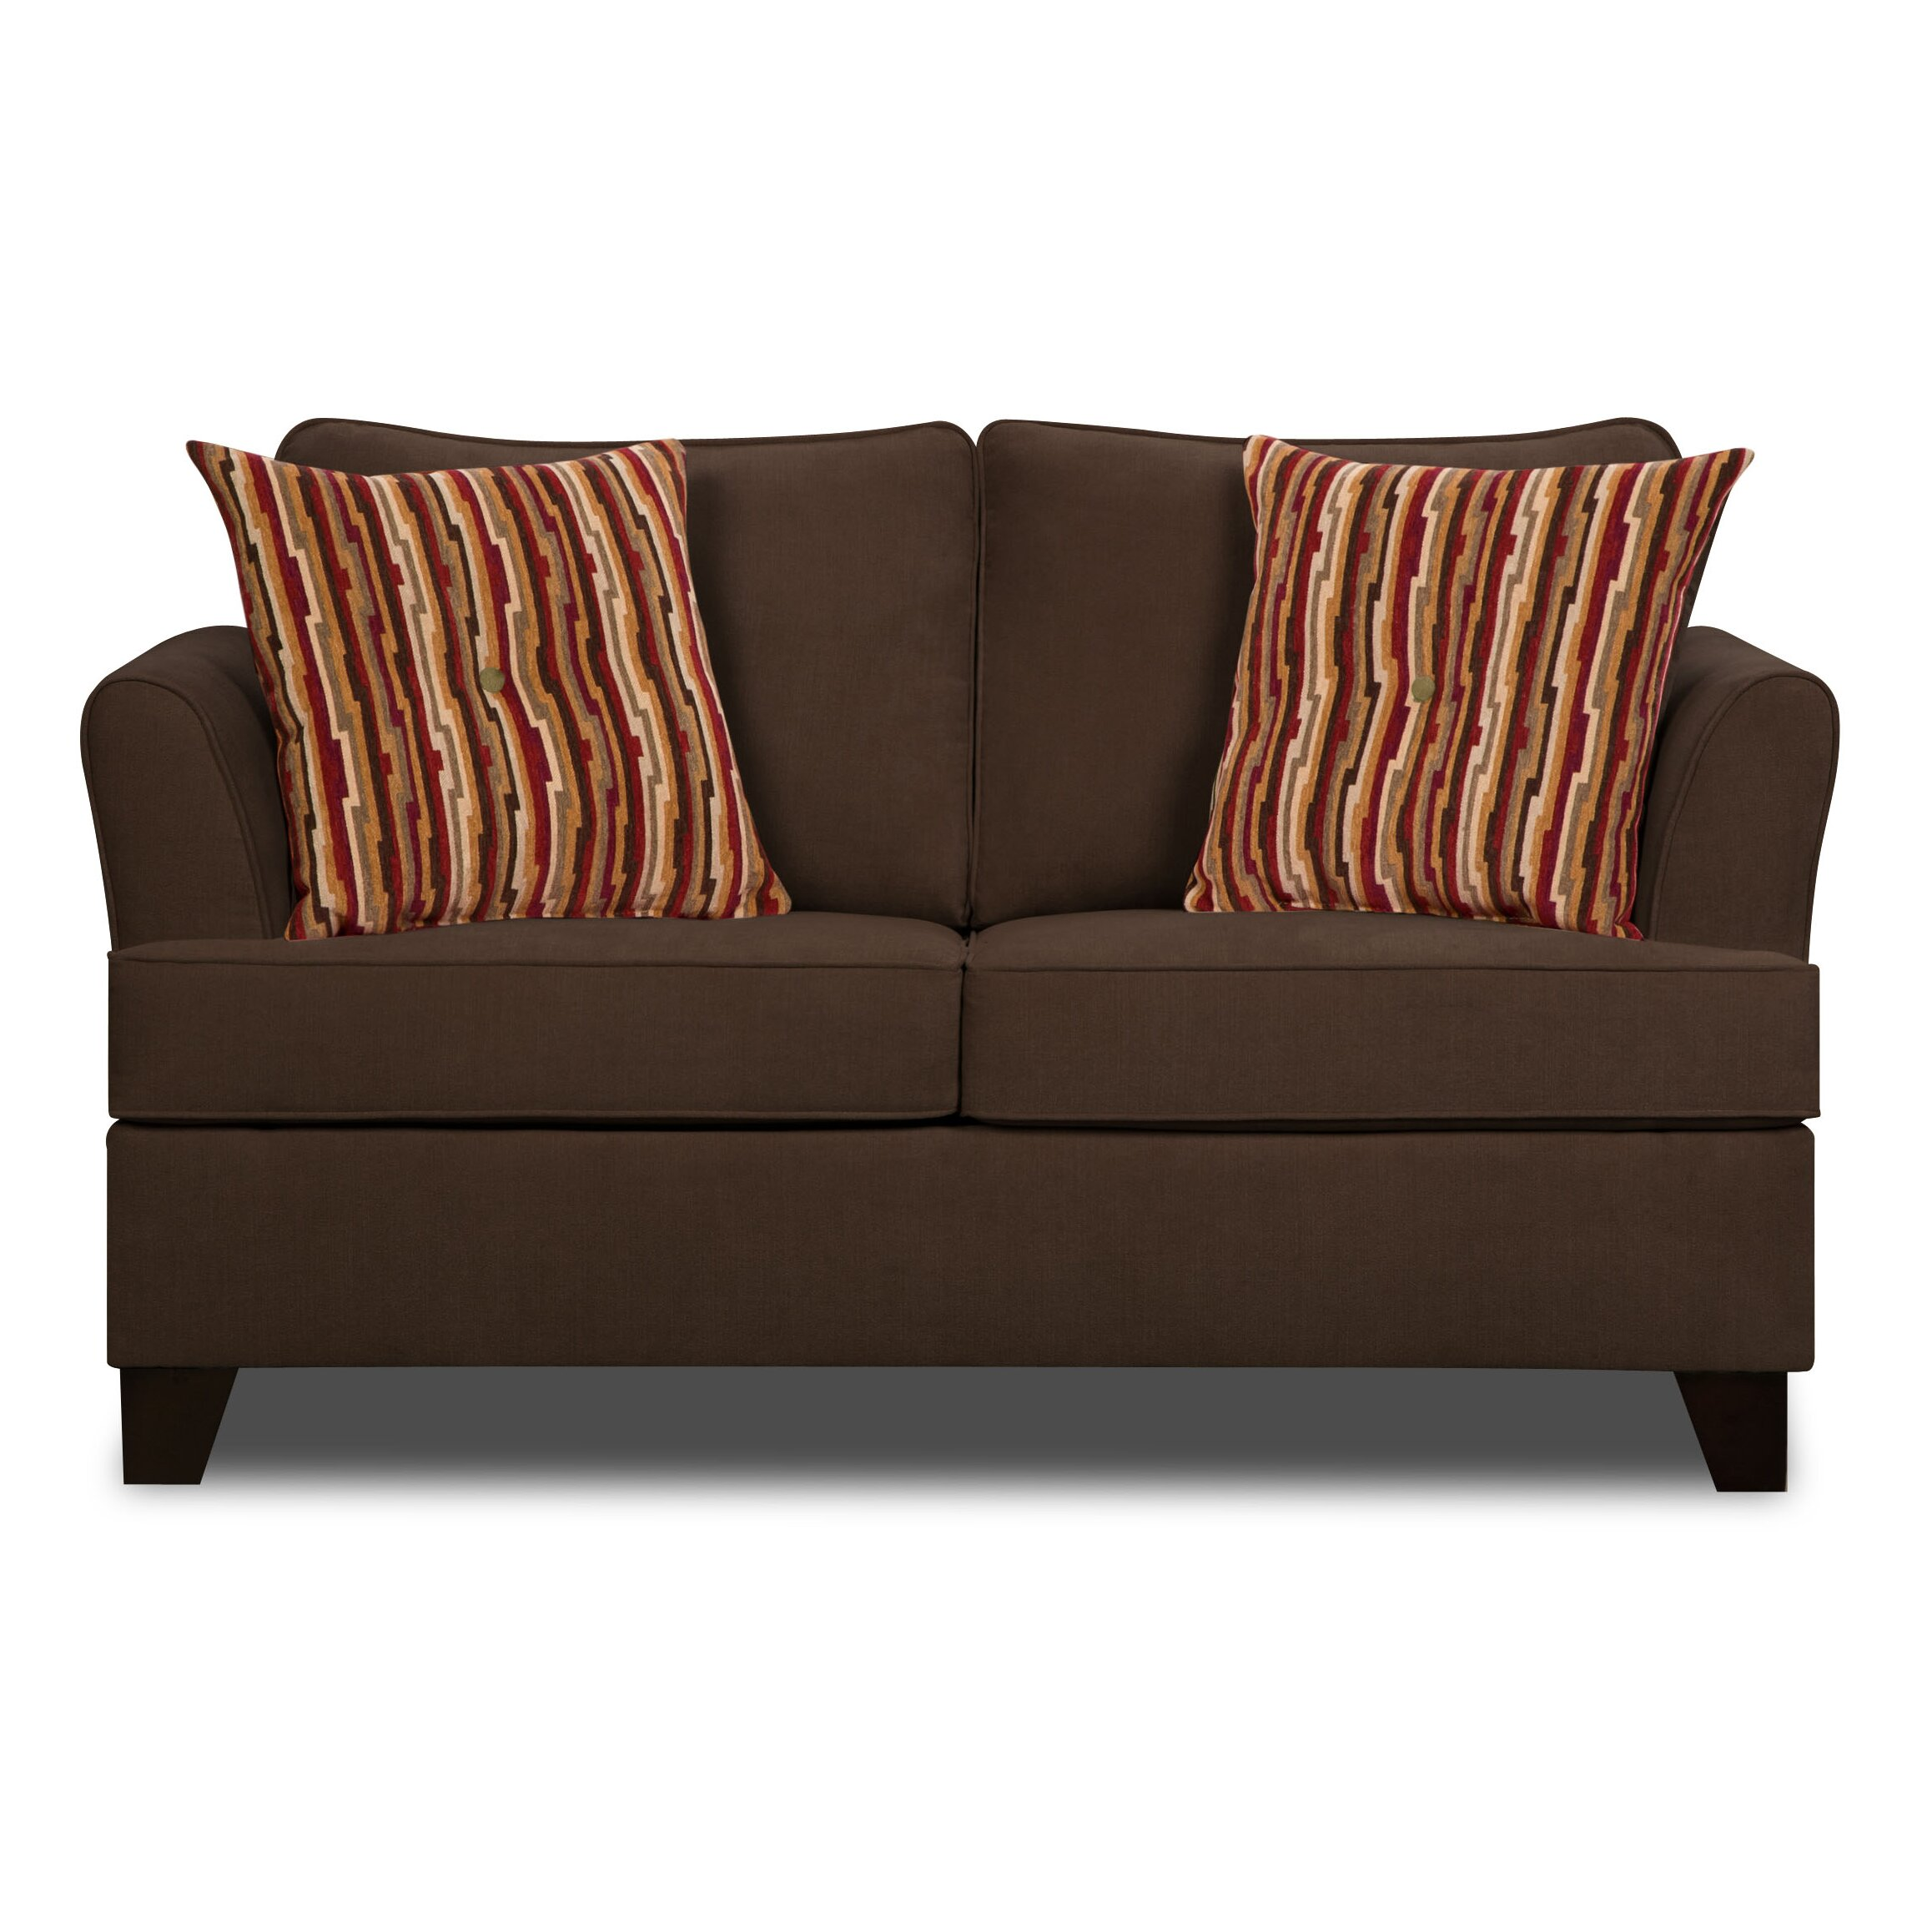 Simmons Sleeper Sofa